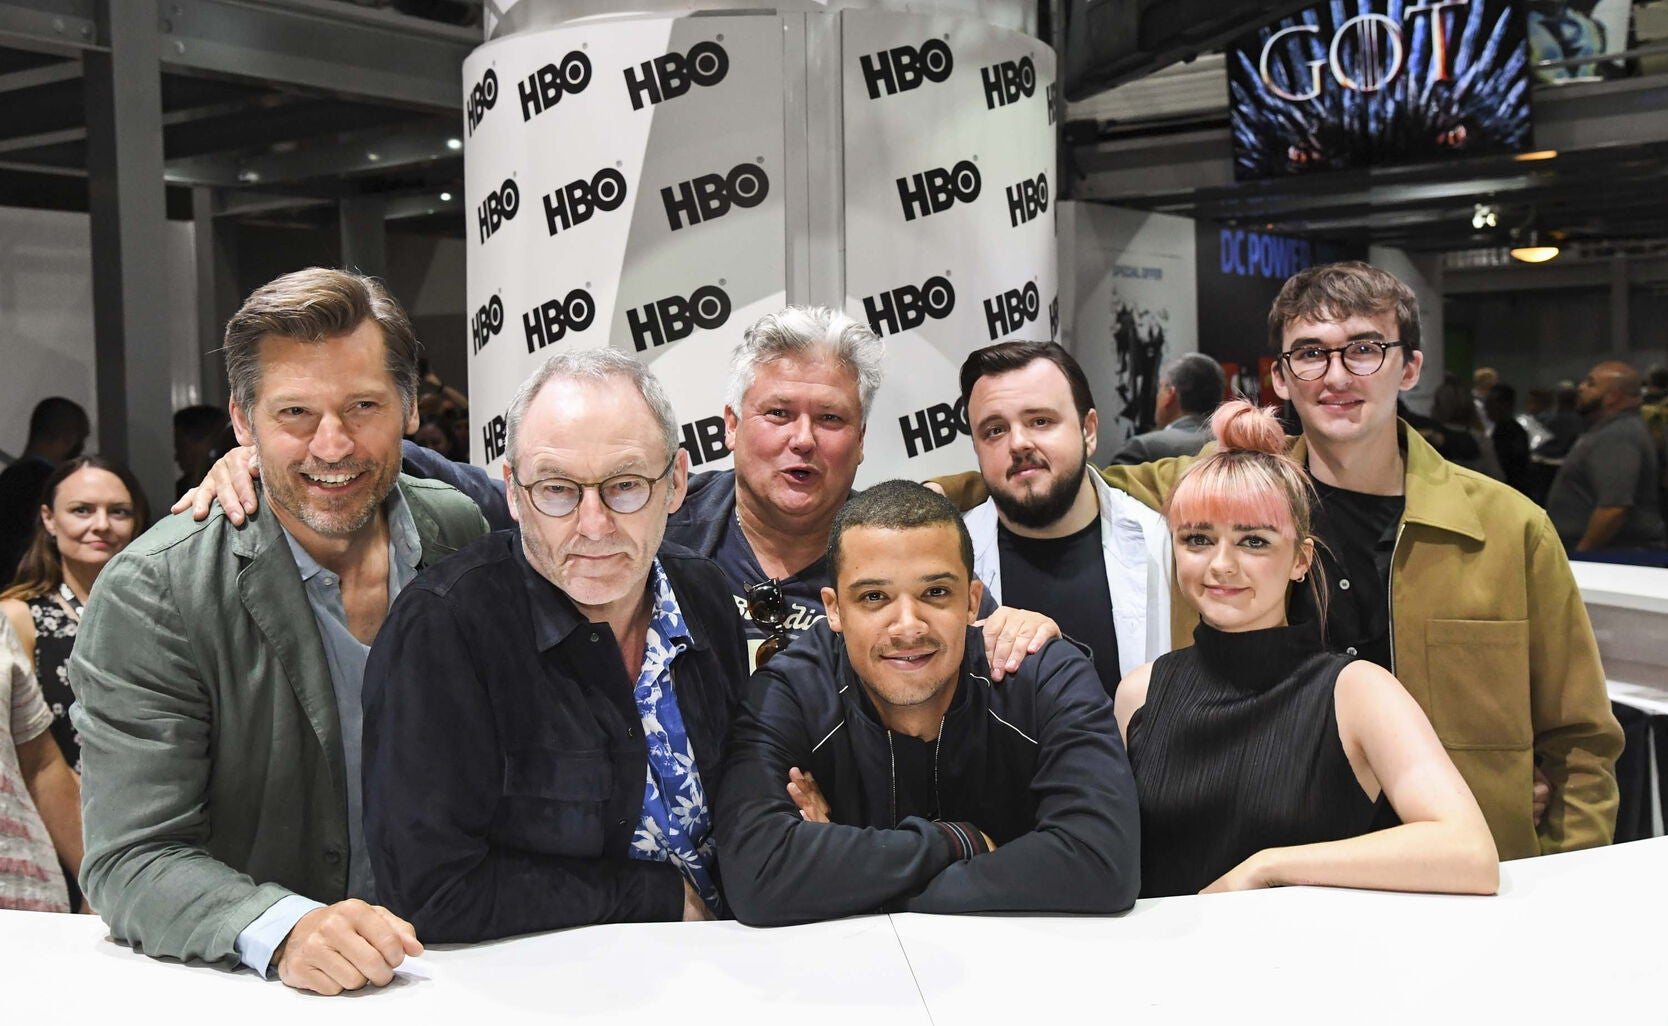 Cast of the TV Series Game of Thrones at Comic-Con 2019